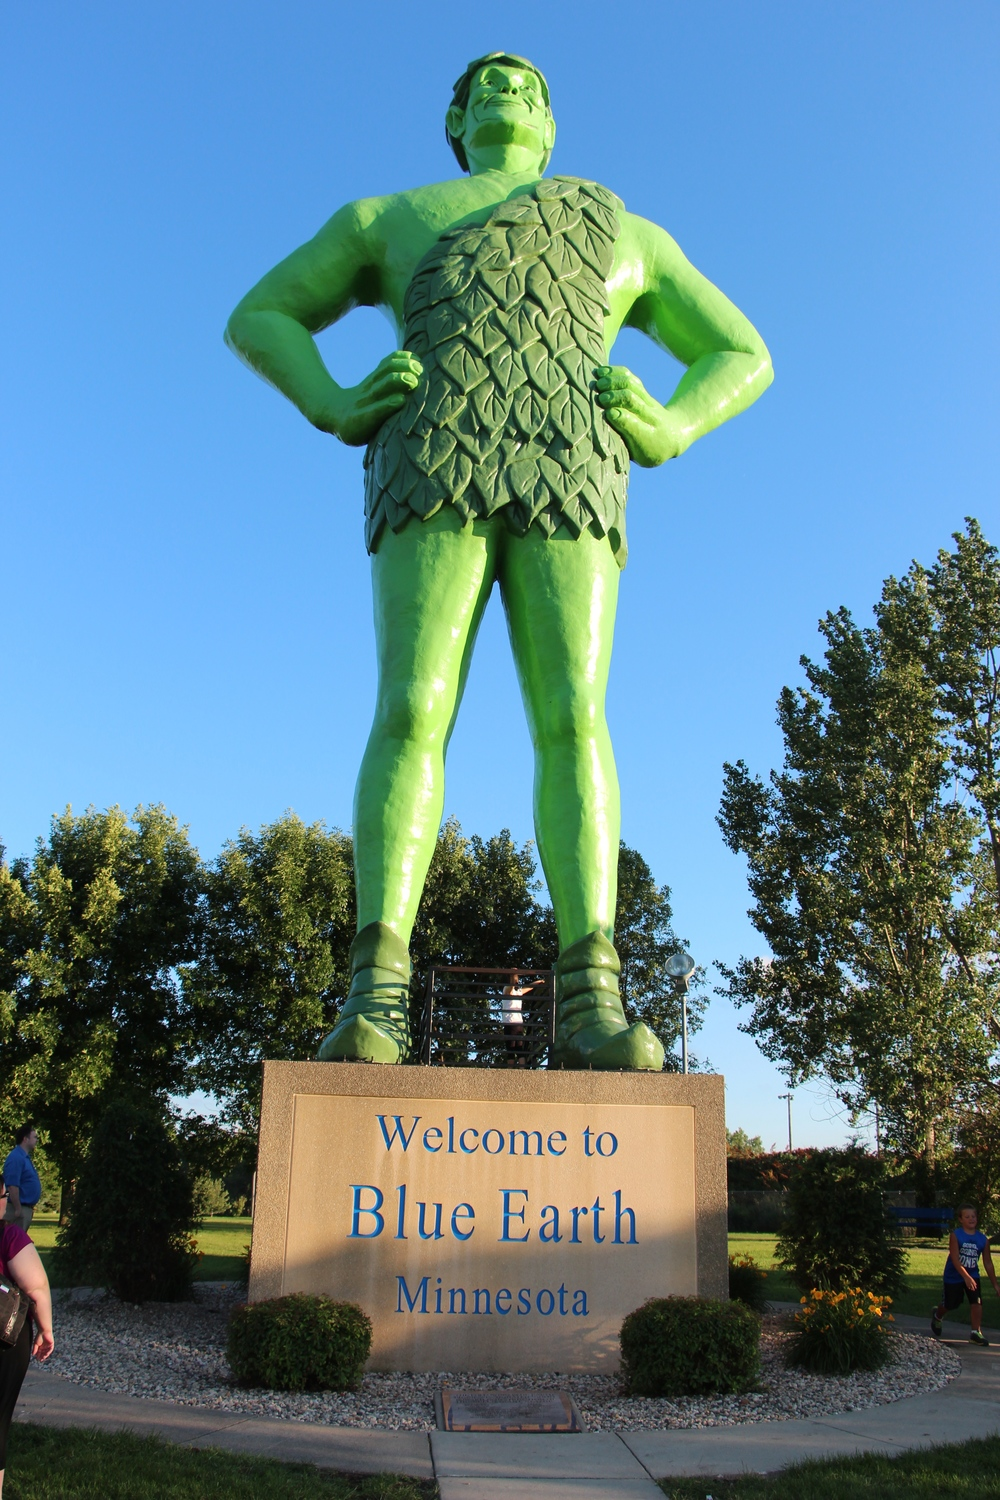 Ah, the REAL Green Giant! Blue Earth, Minnesota